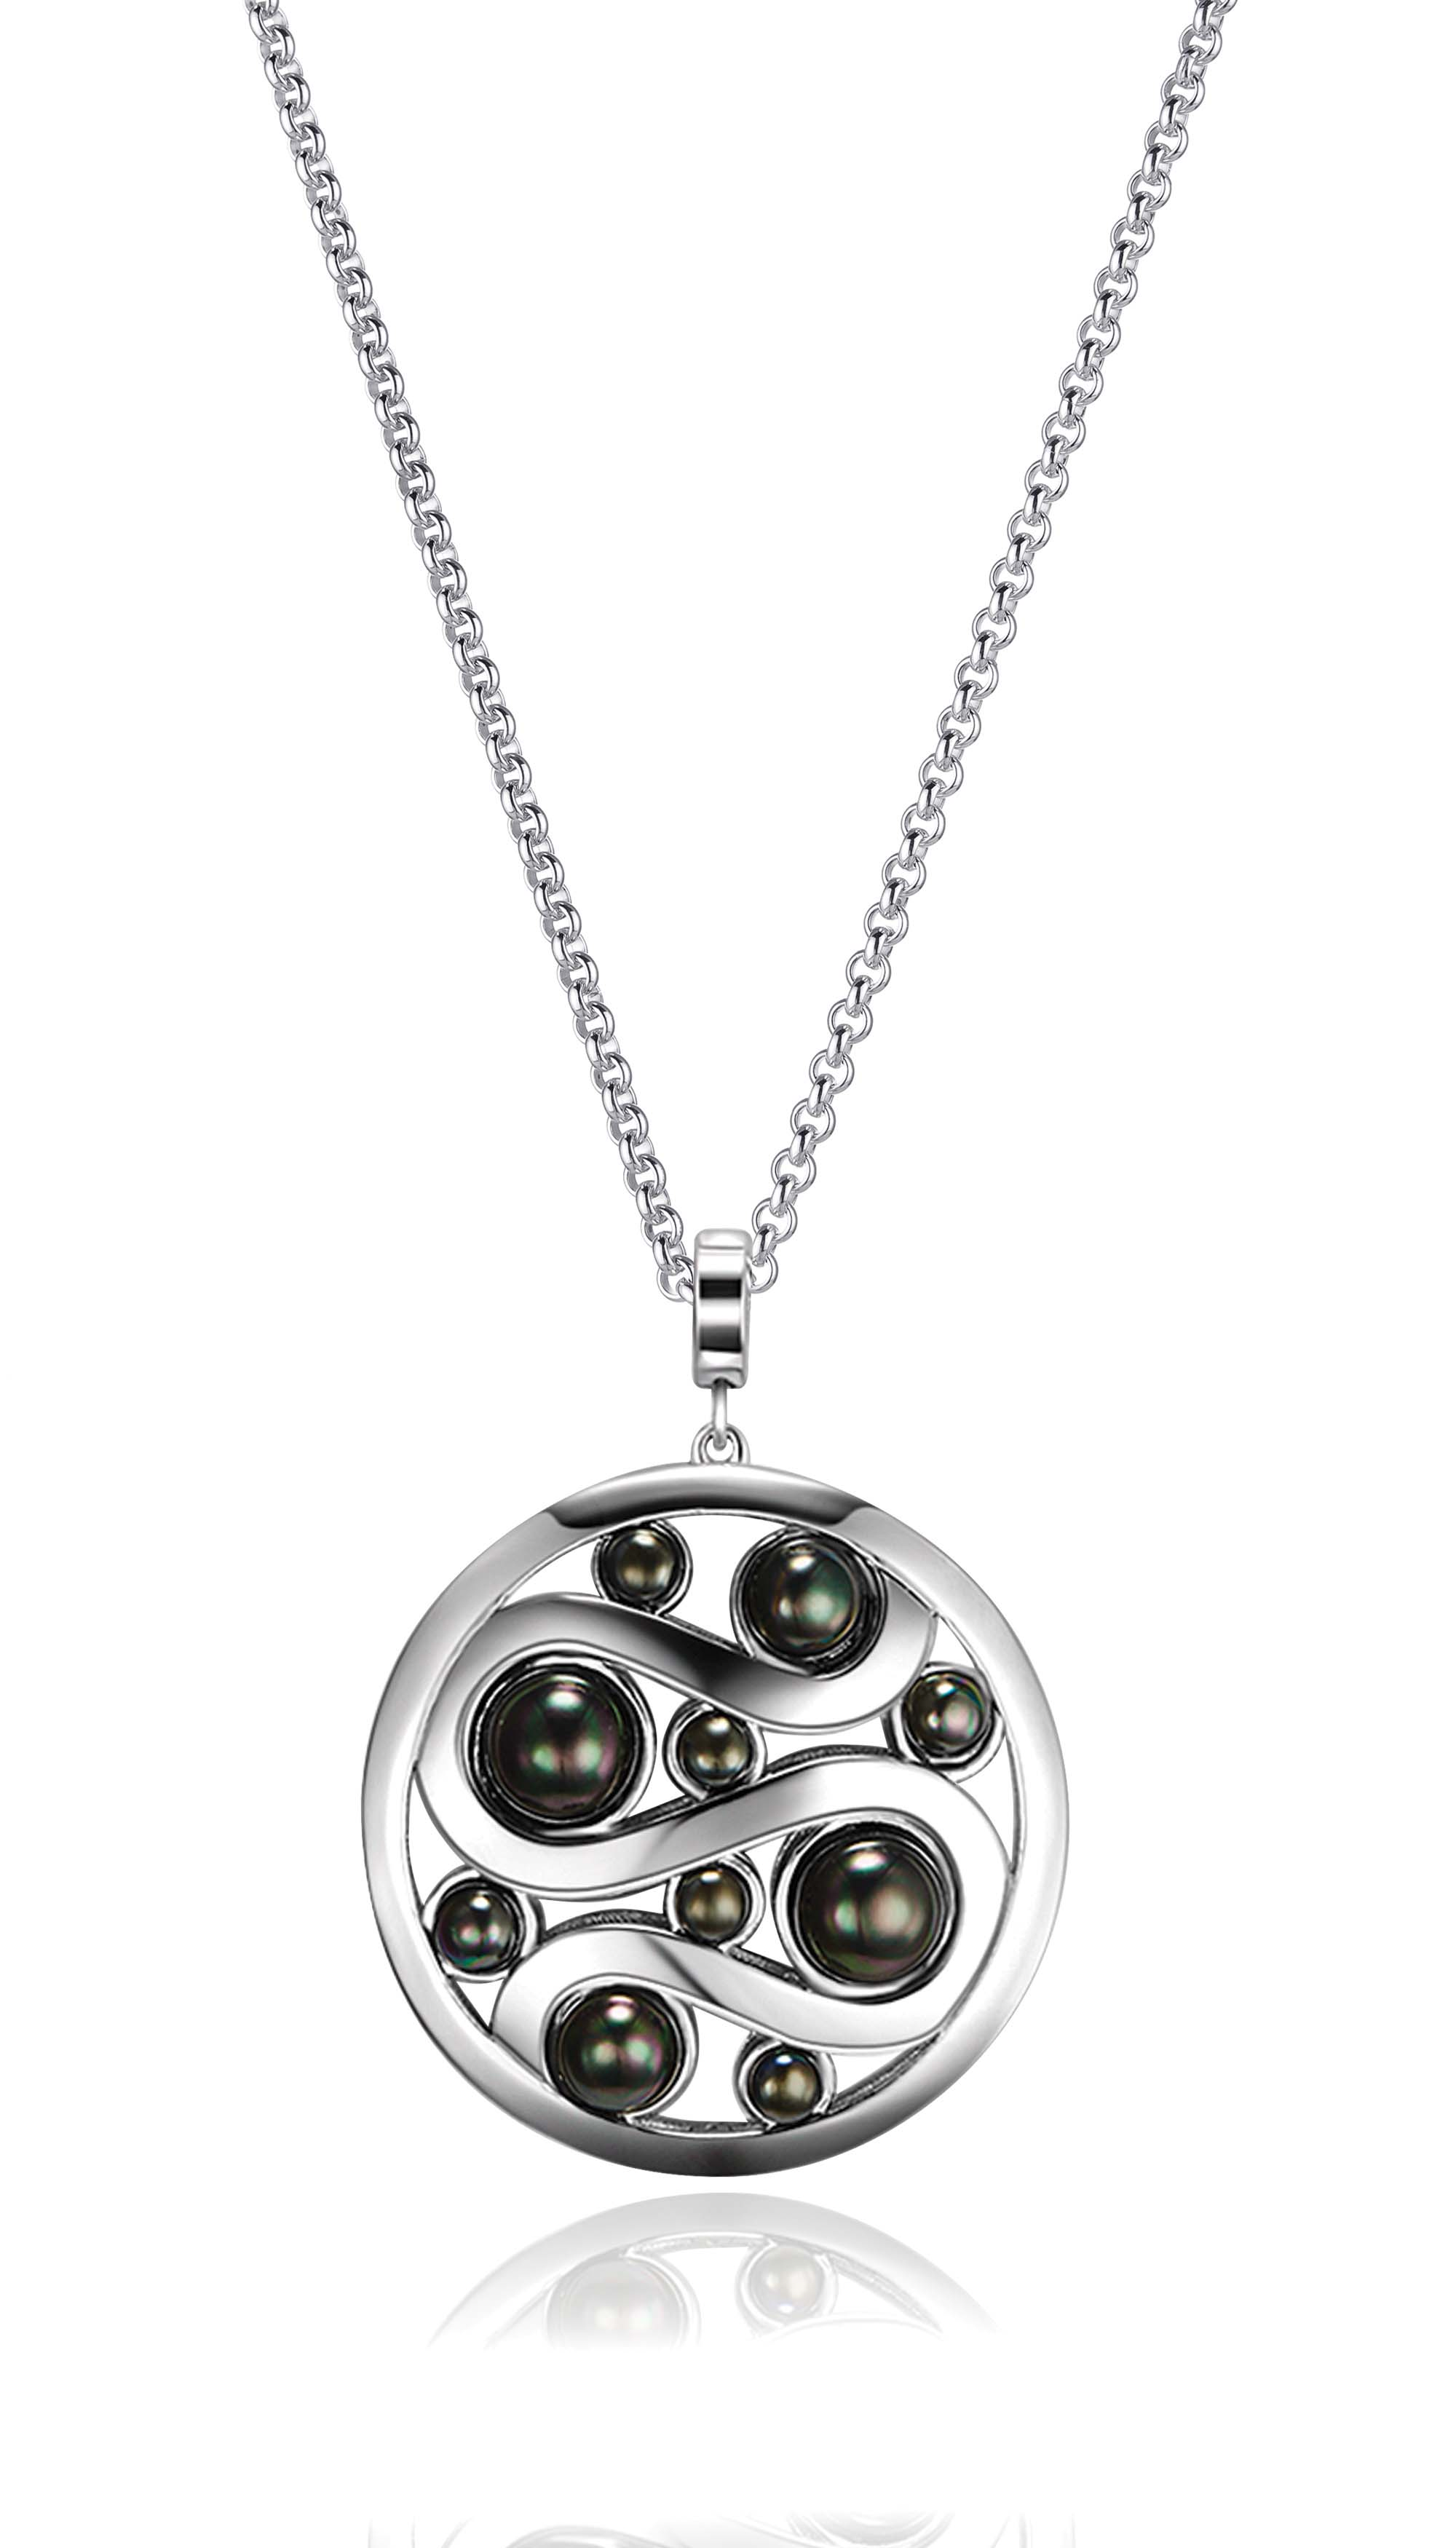 Kagi Steel Me Petite Necklace 47cm $129 with Mystic Pearl Pendant (Dark Side) $249 www.kagi.net